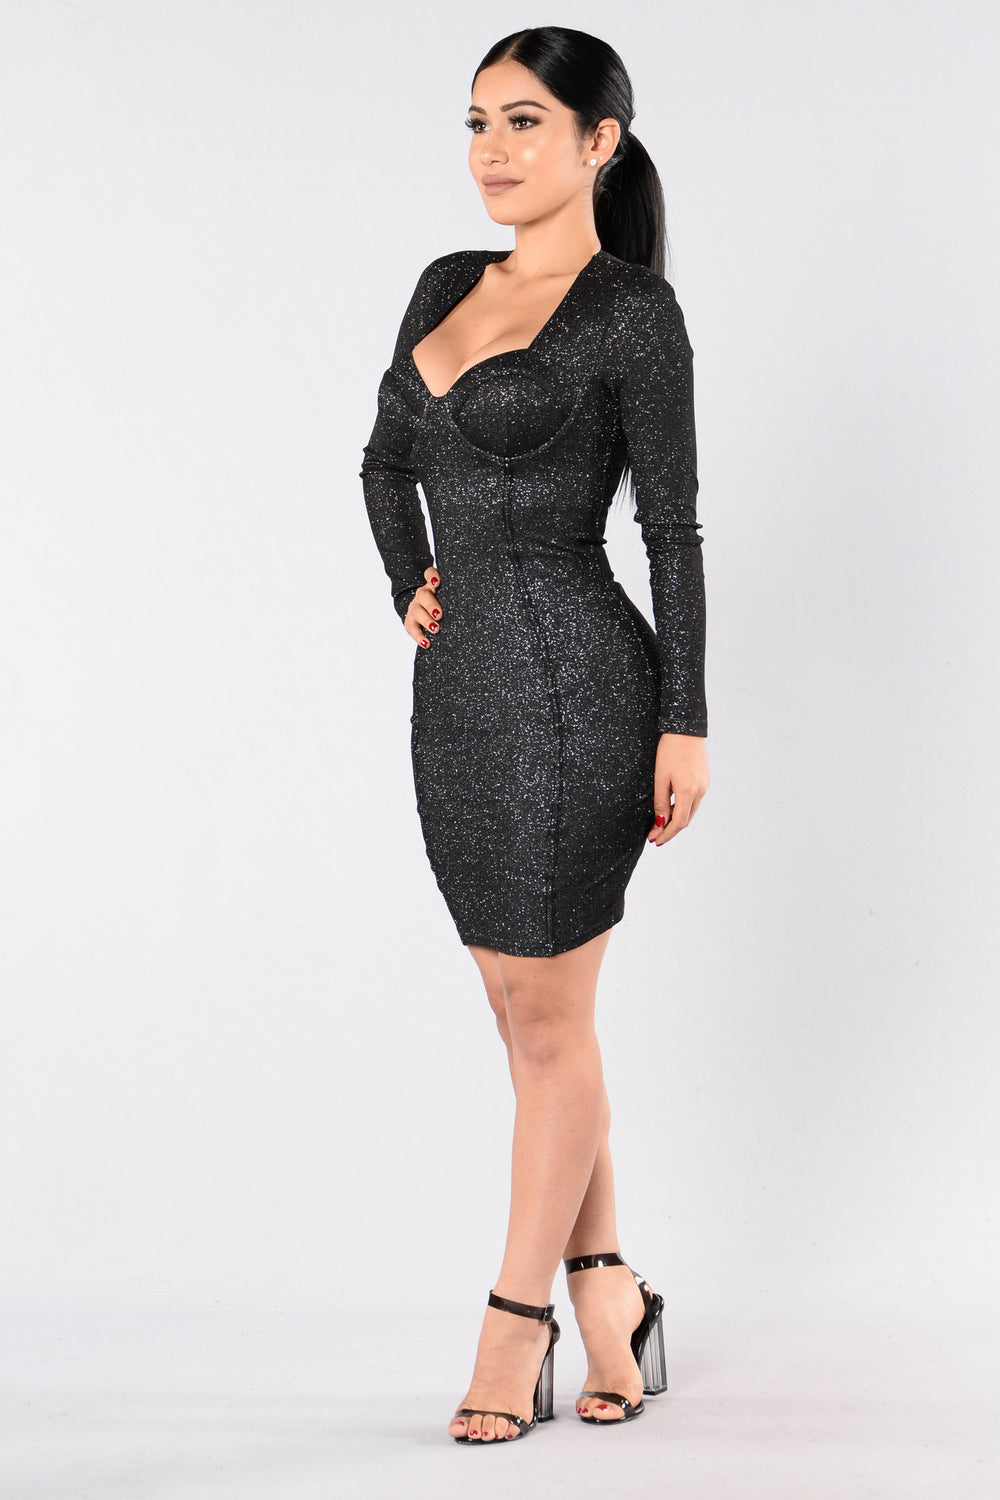 Remember This Moment Dress - Black